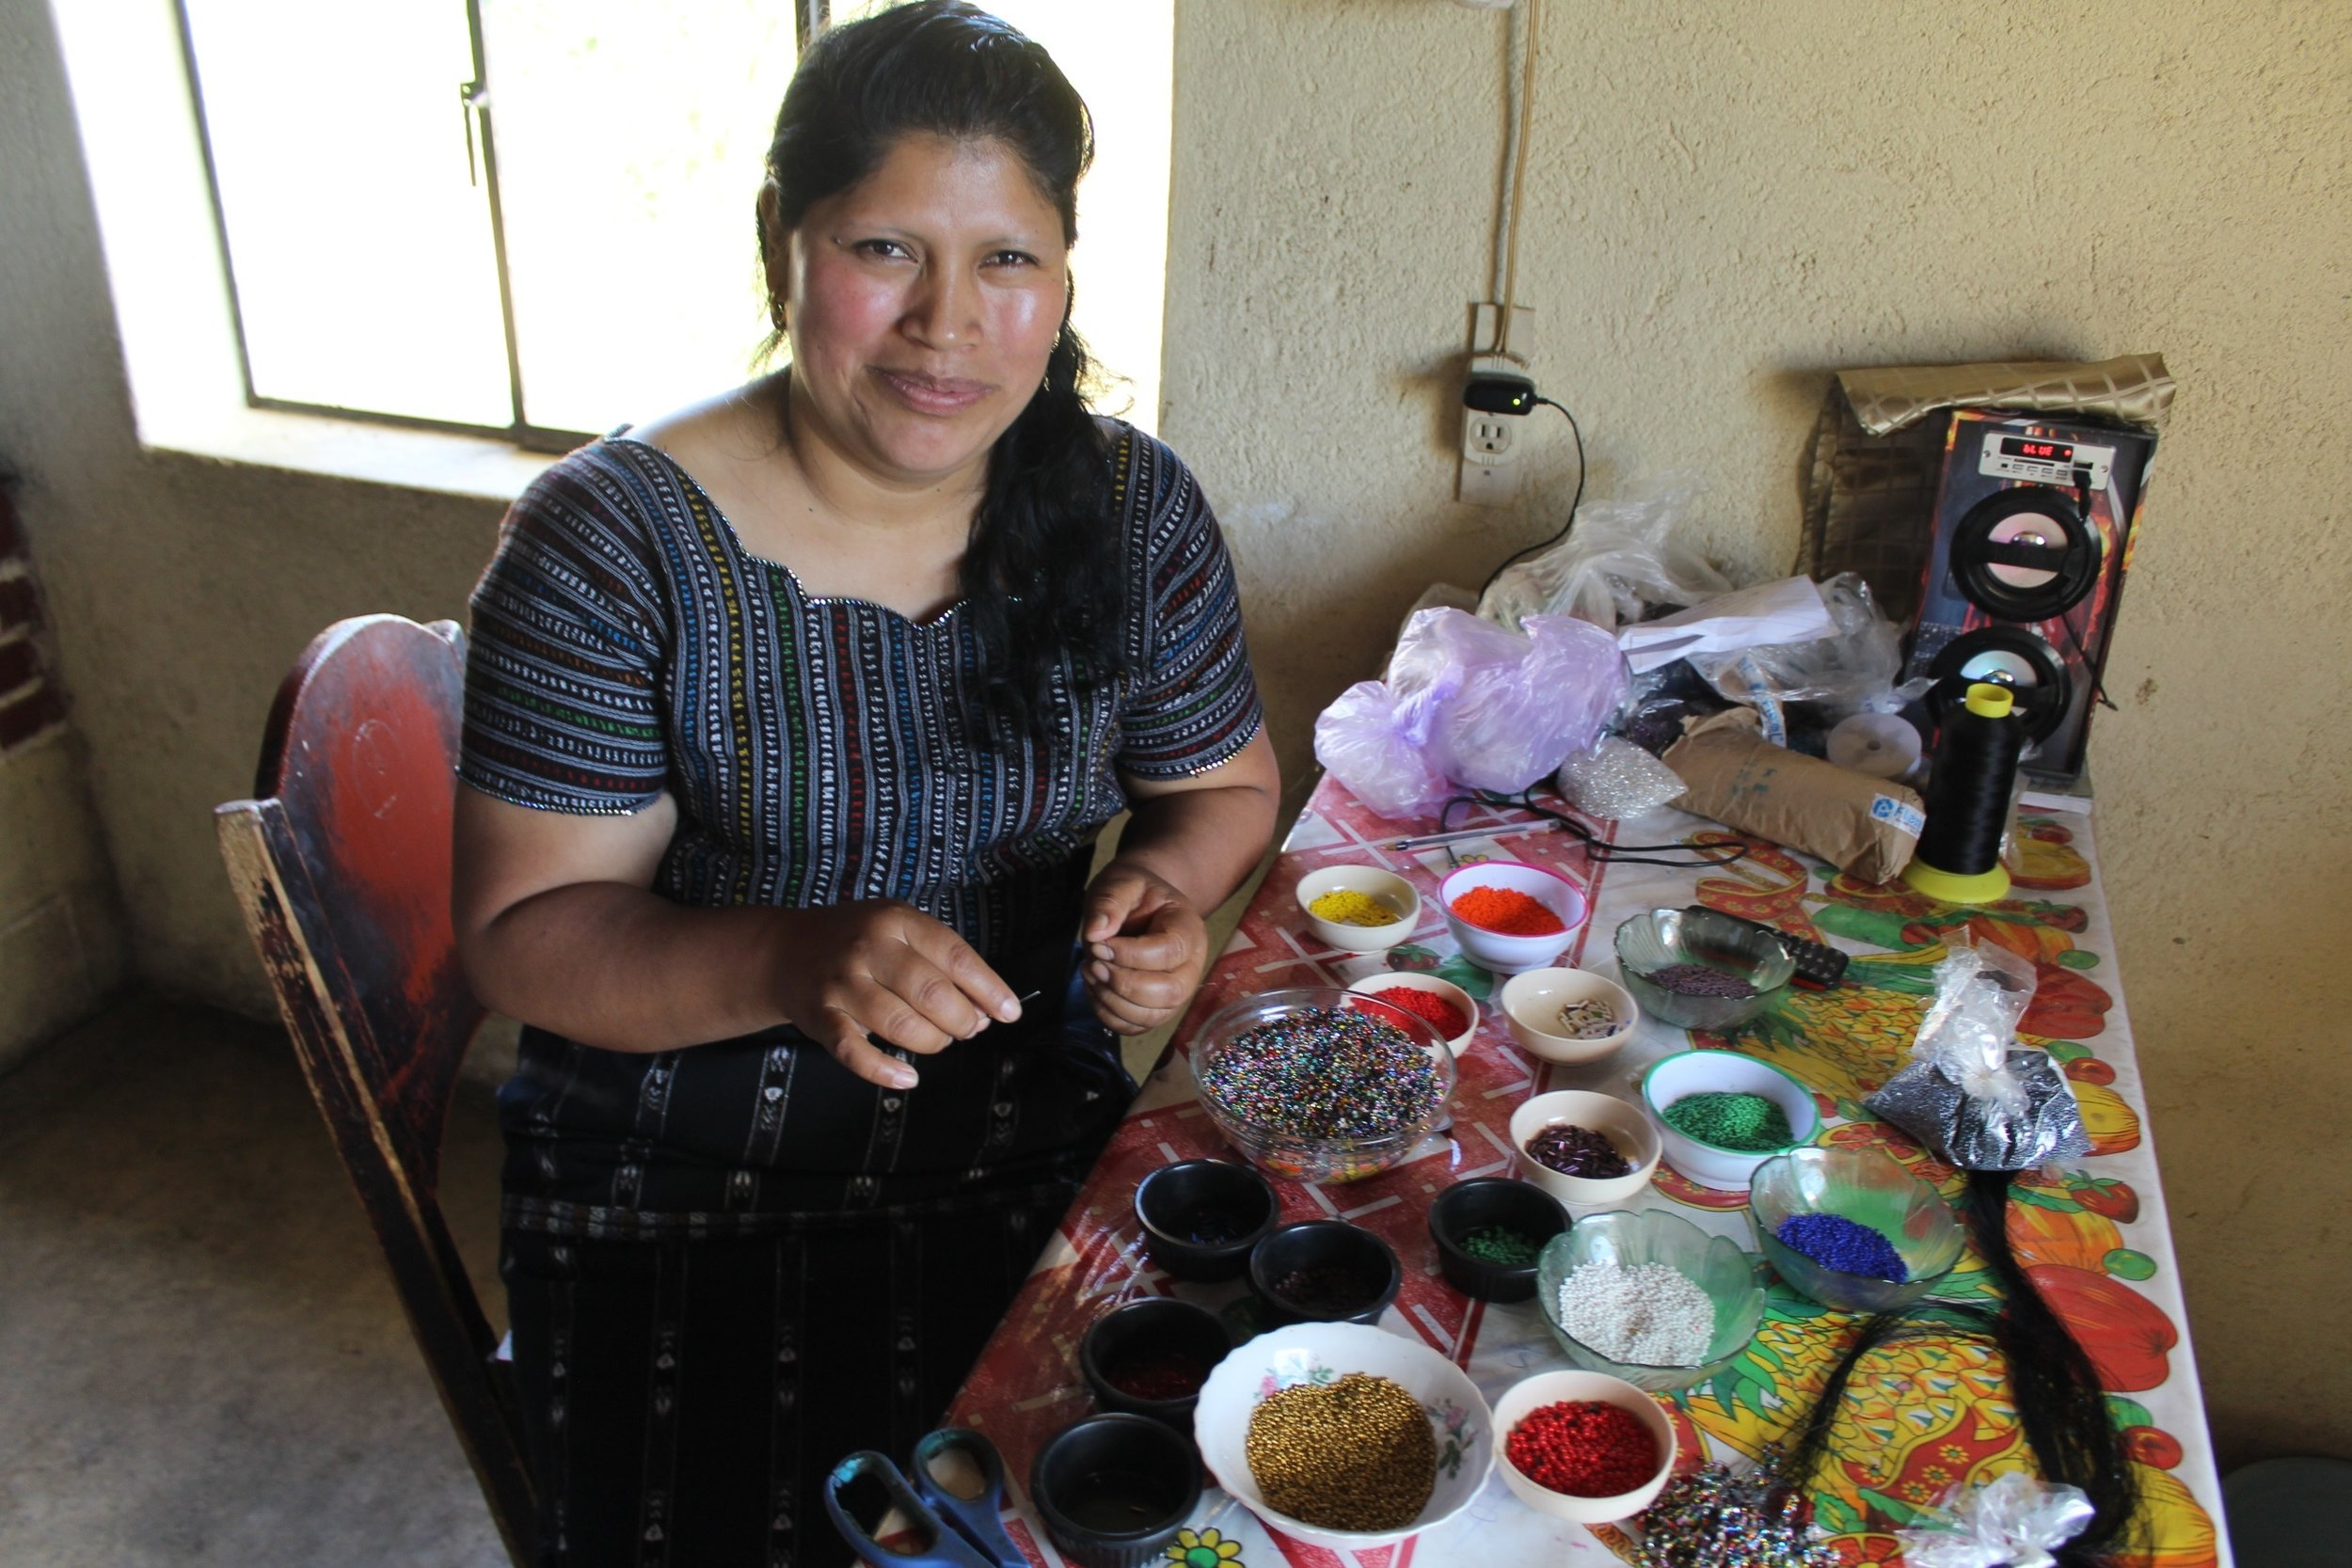 Olga Tunay - Chiaquijya, Sololá - Friendship Bridge's client for 15 loan cycles.Olga, along with 28 employees, creates unique and striking jewelry and handcrafts. Her tremendous talent, energy, and enthusiasm for what she does are undeniable and evident in her work.